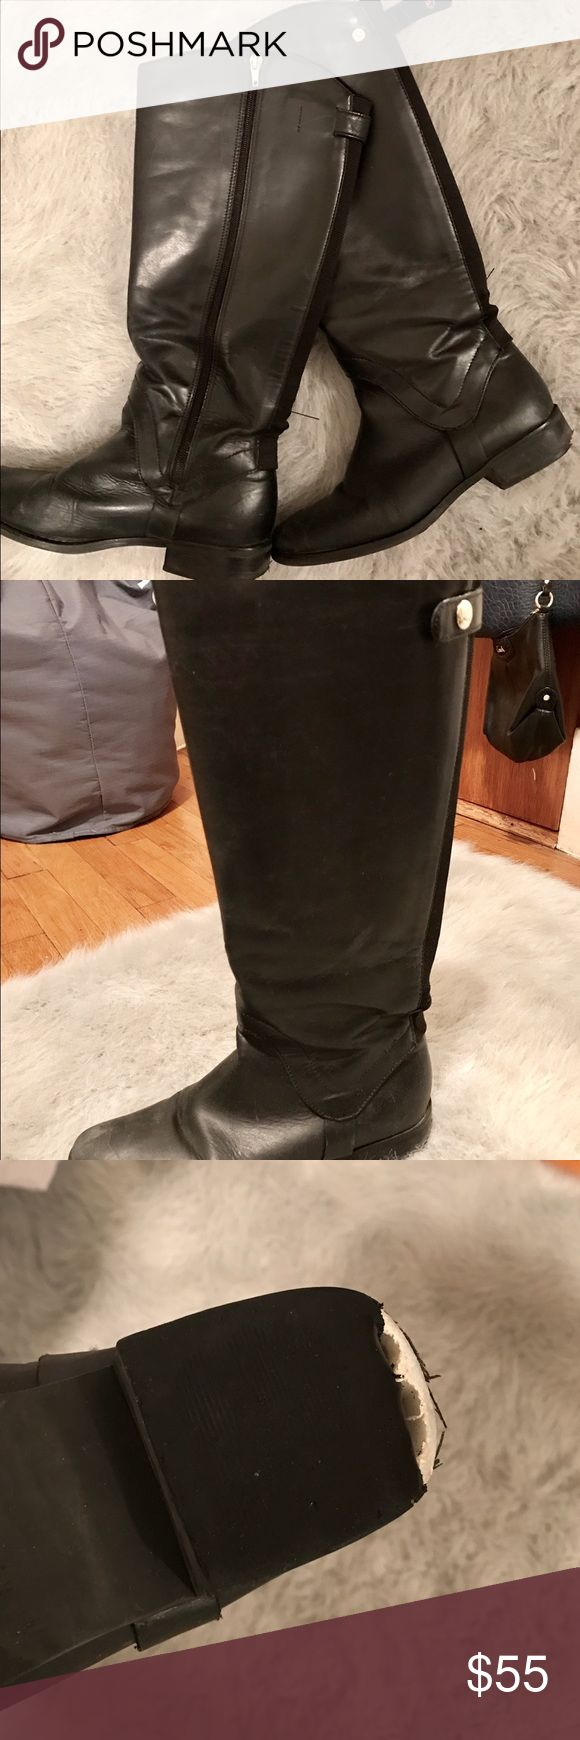 Tall black boots Under the knee boots. Wide fit around the leg. Some signs of wear on the edge of the heel but still in good condition. Steven by Steve Madden Shoes Combat & Moto Boots